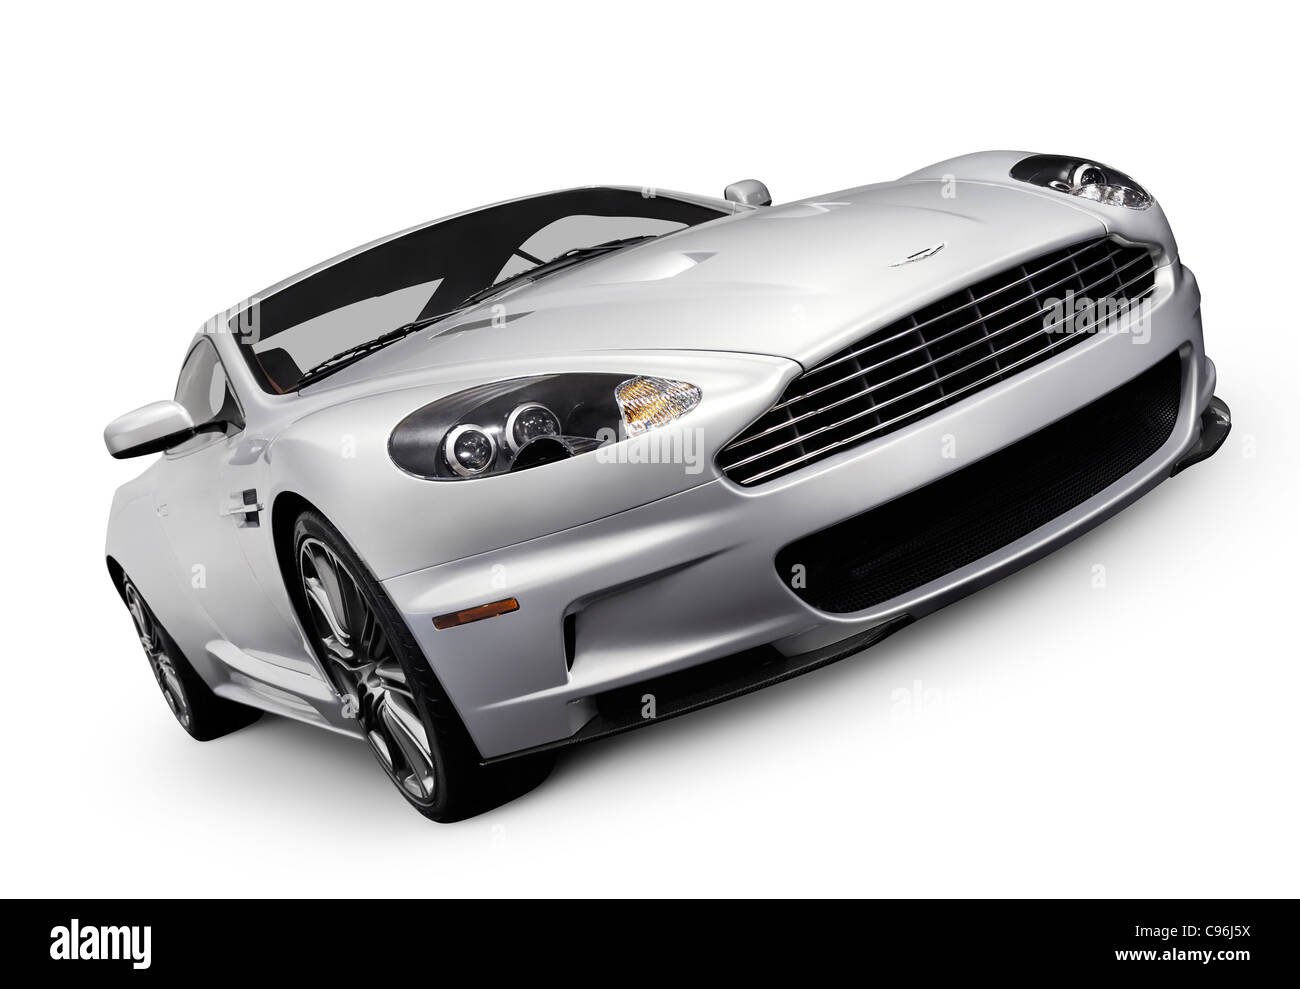 2009 Aston Martin DBS luxury car. Isolated with clipping path on white background. - Stock Image